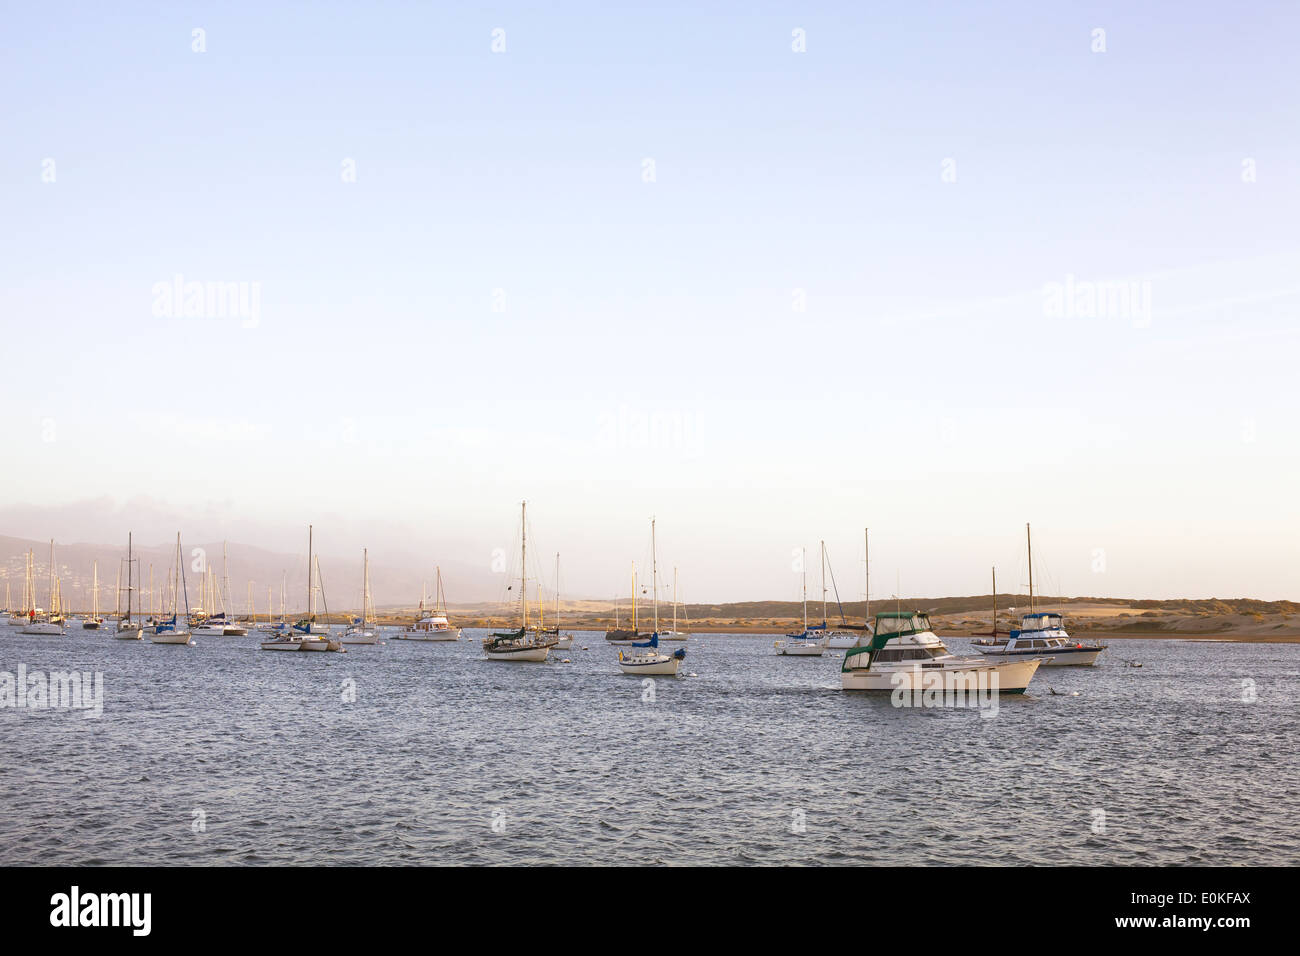 A group of sailboats anchored on the water in the evening light. - Stock Image